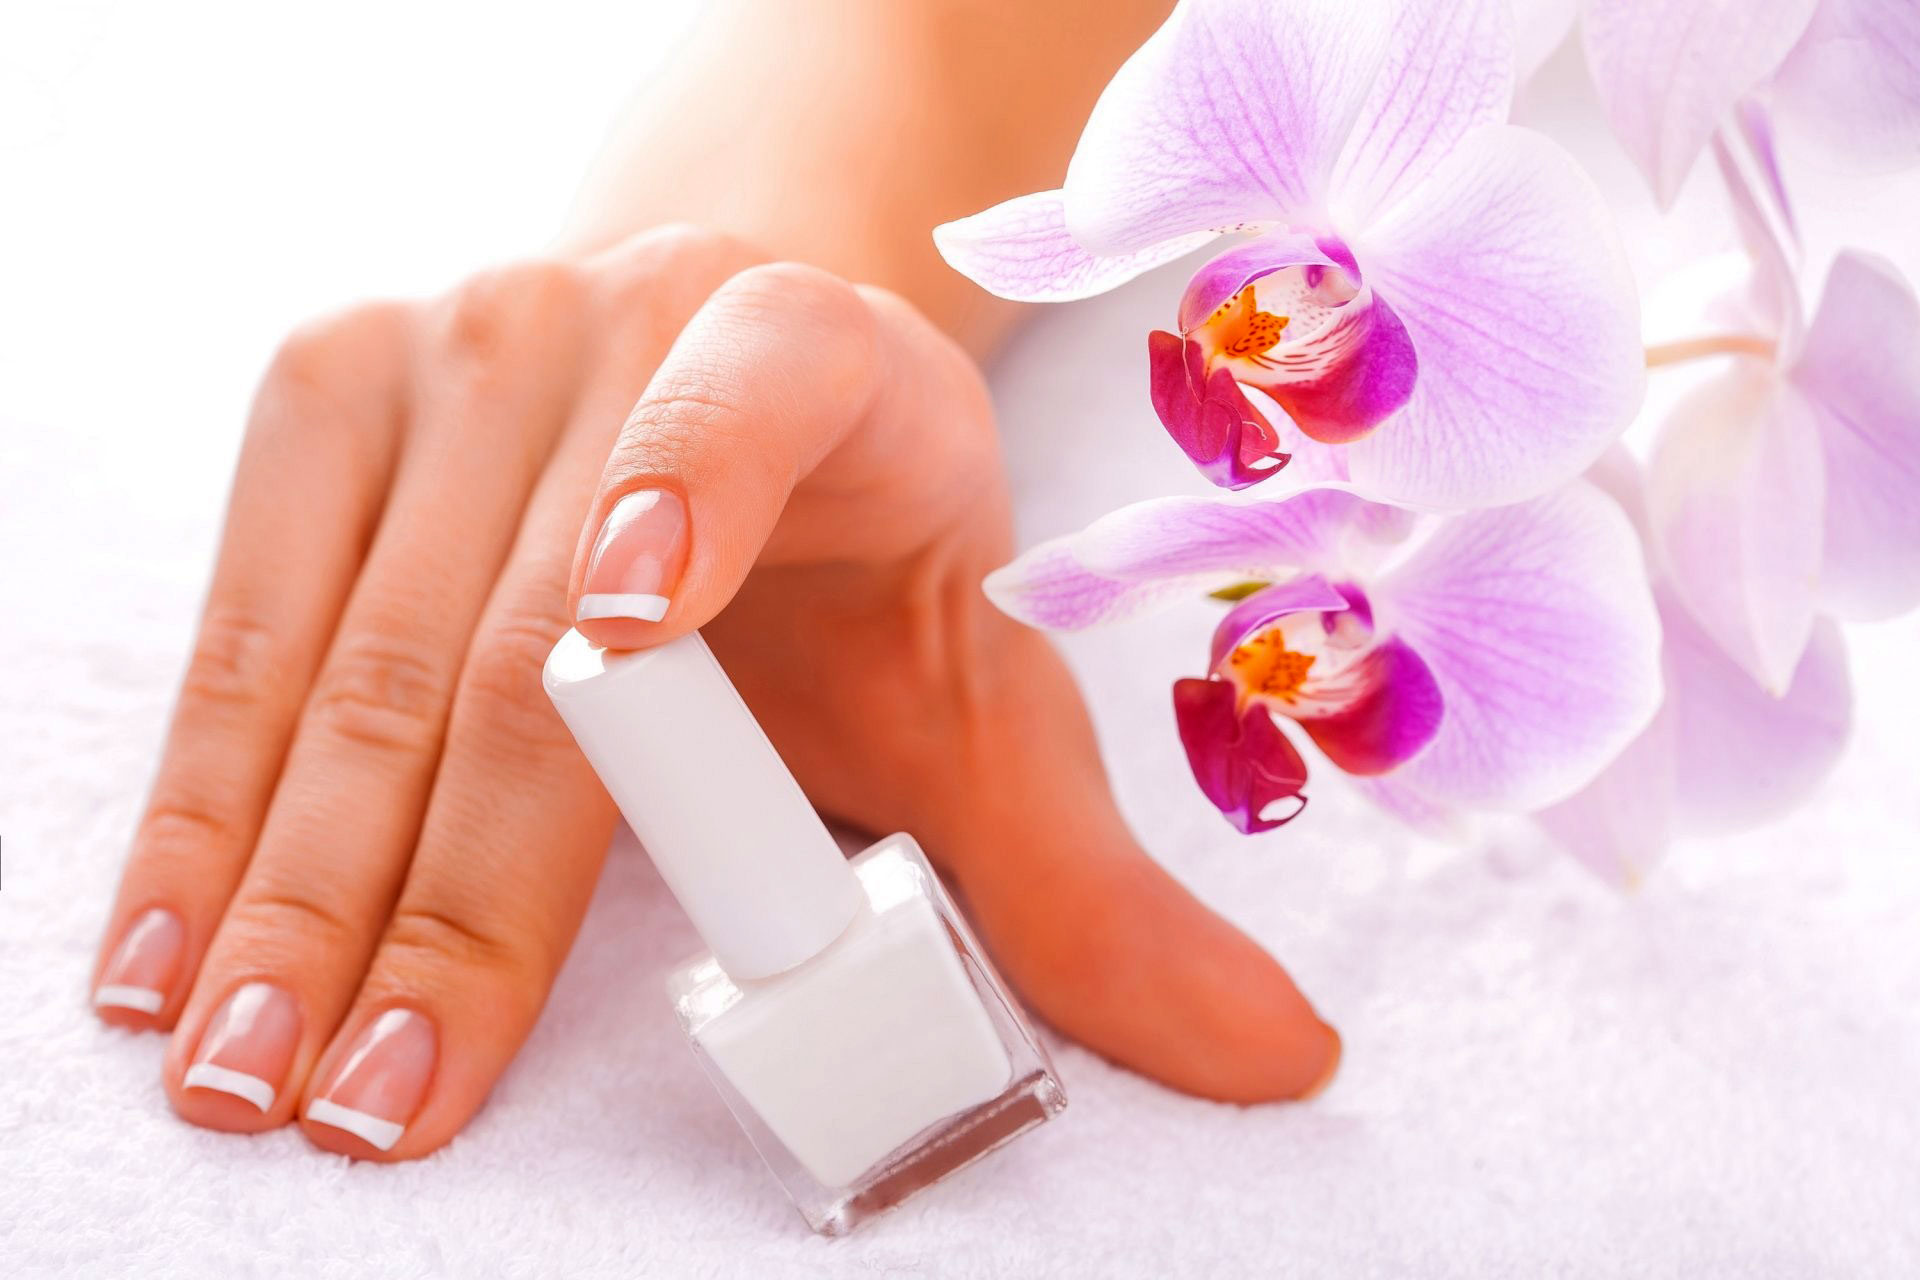 How to Do French Manicure in the house